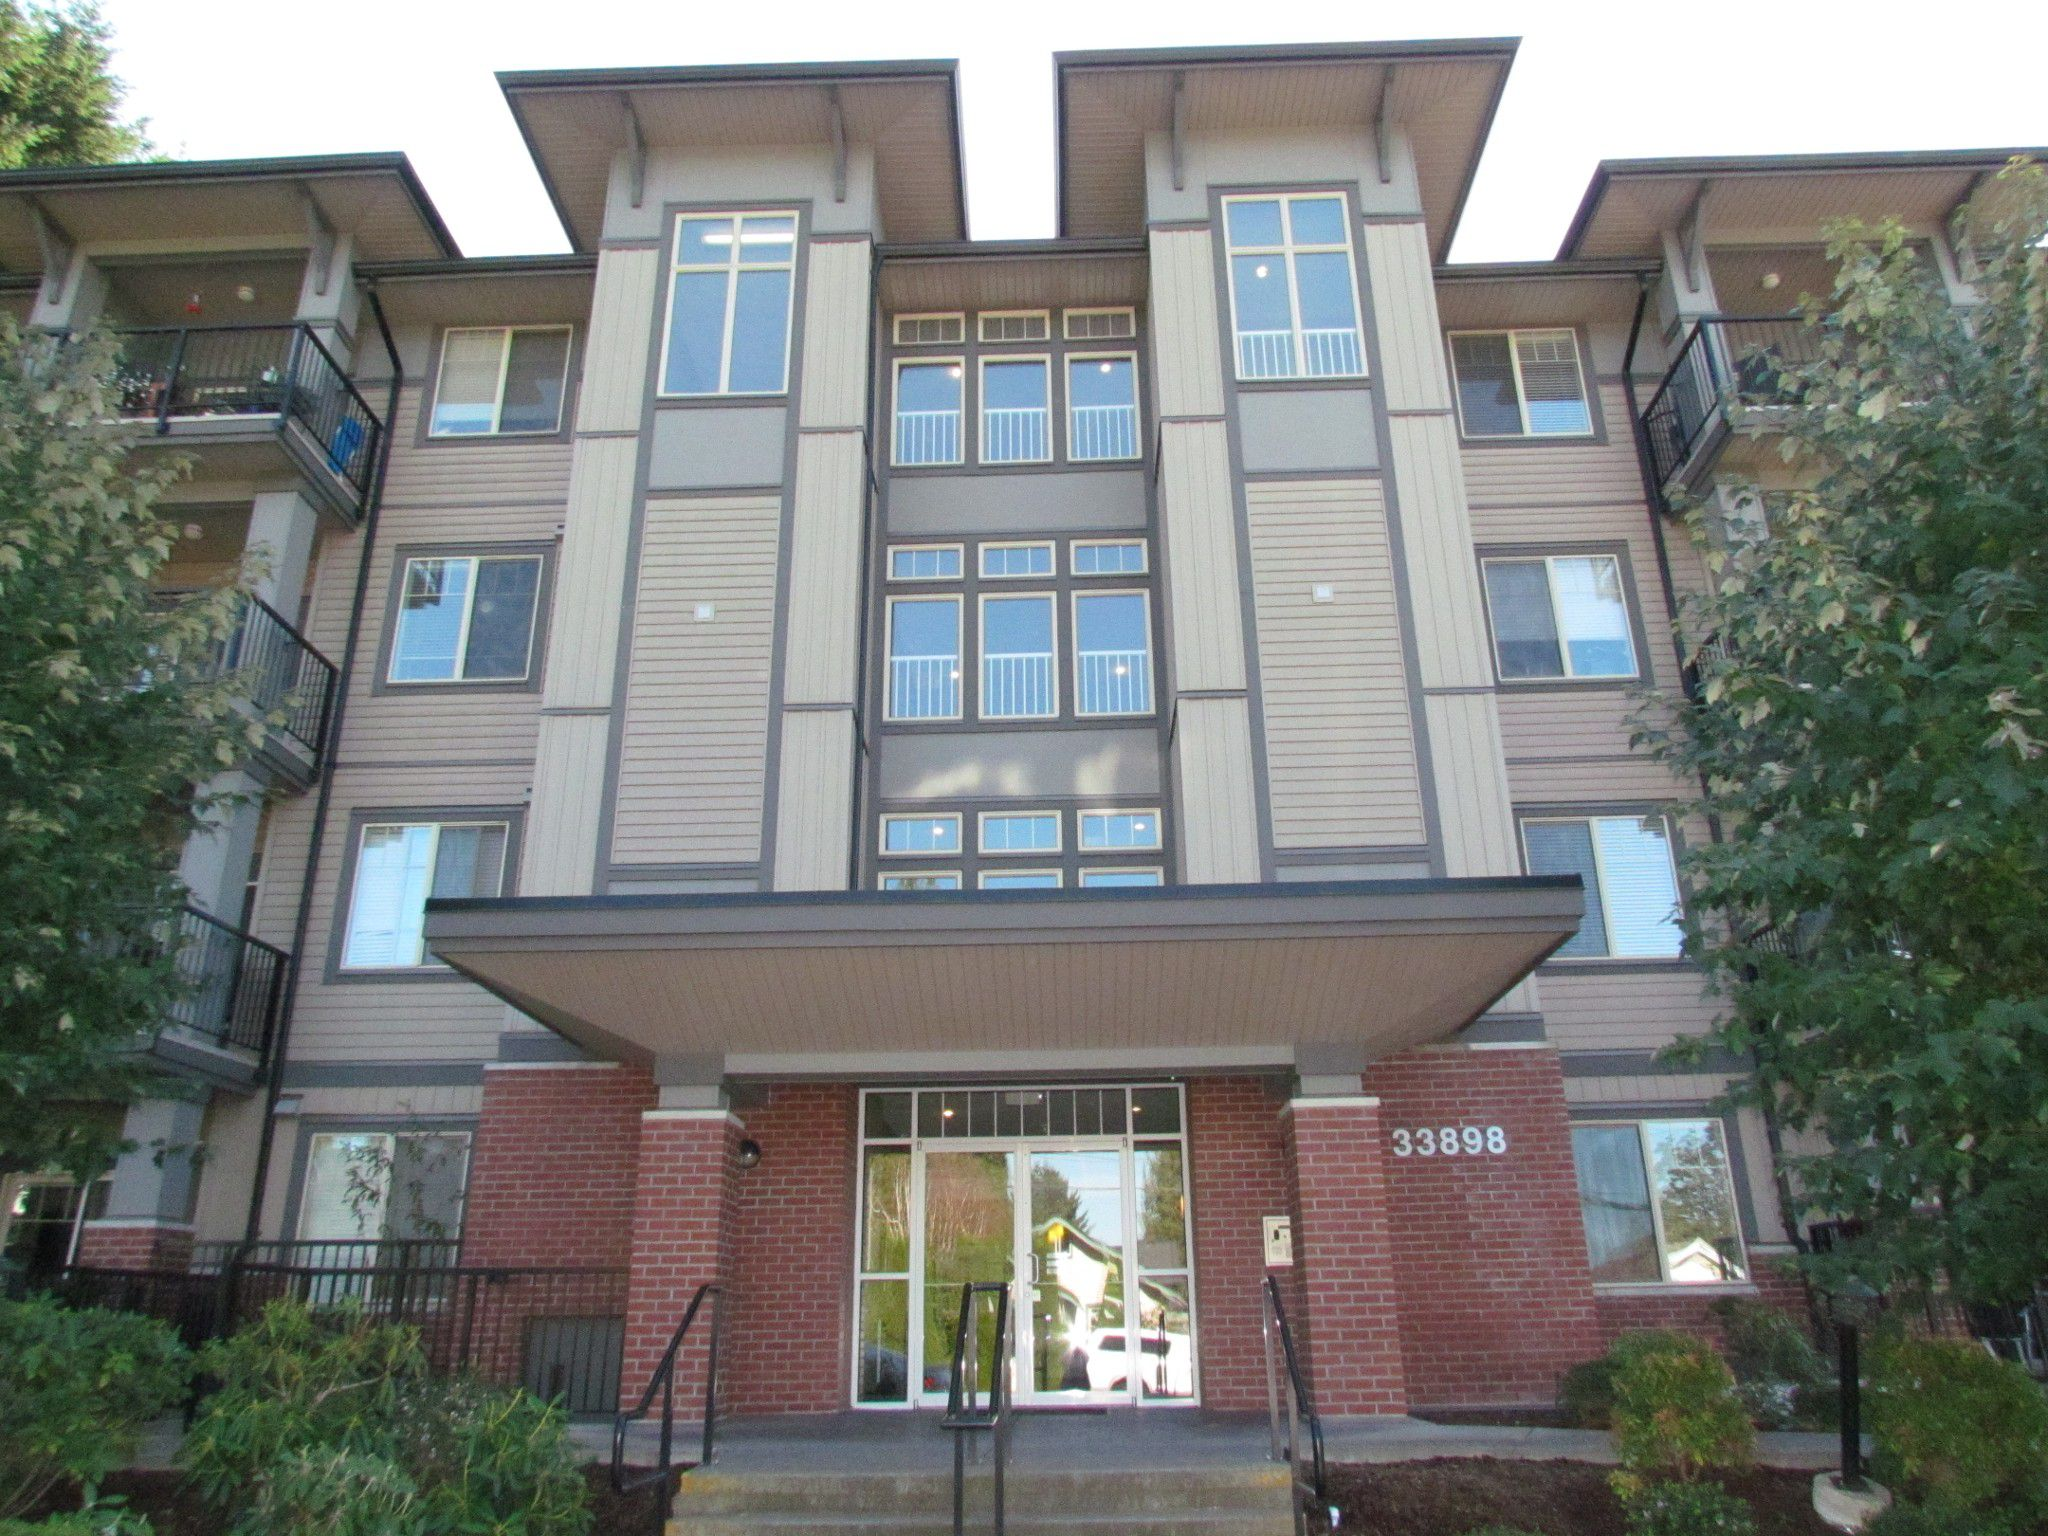 Main Photo: #411 33898 Pine St. in Abbotsford: Central Abbotsford Condo for rent